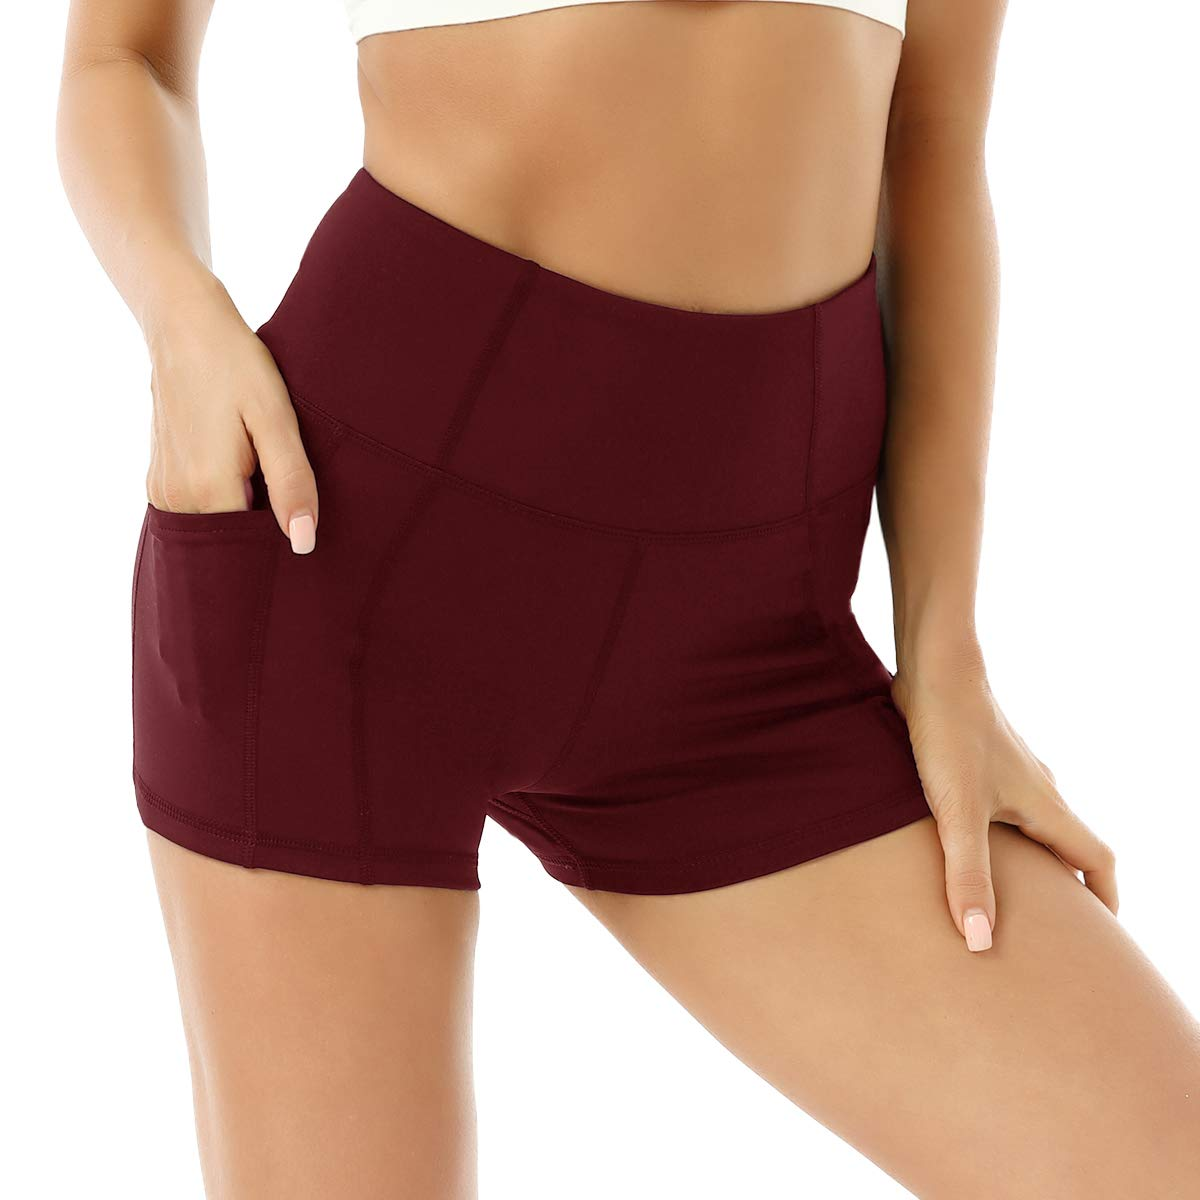 TYUIO Biker Shorts for Women High Waisted Gym Workout Running Athletic Yoga Pant